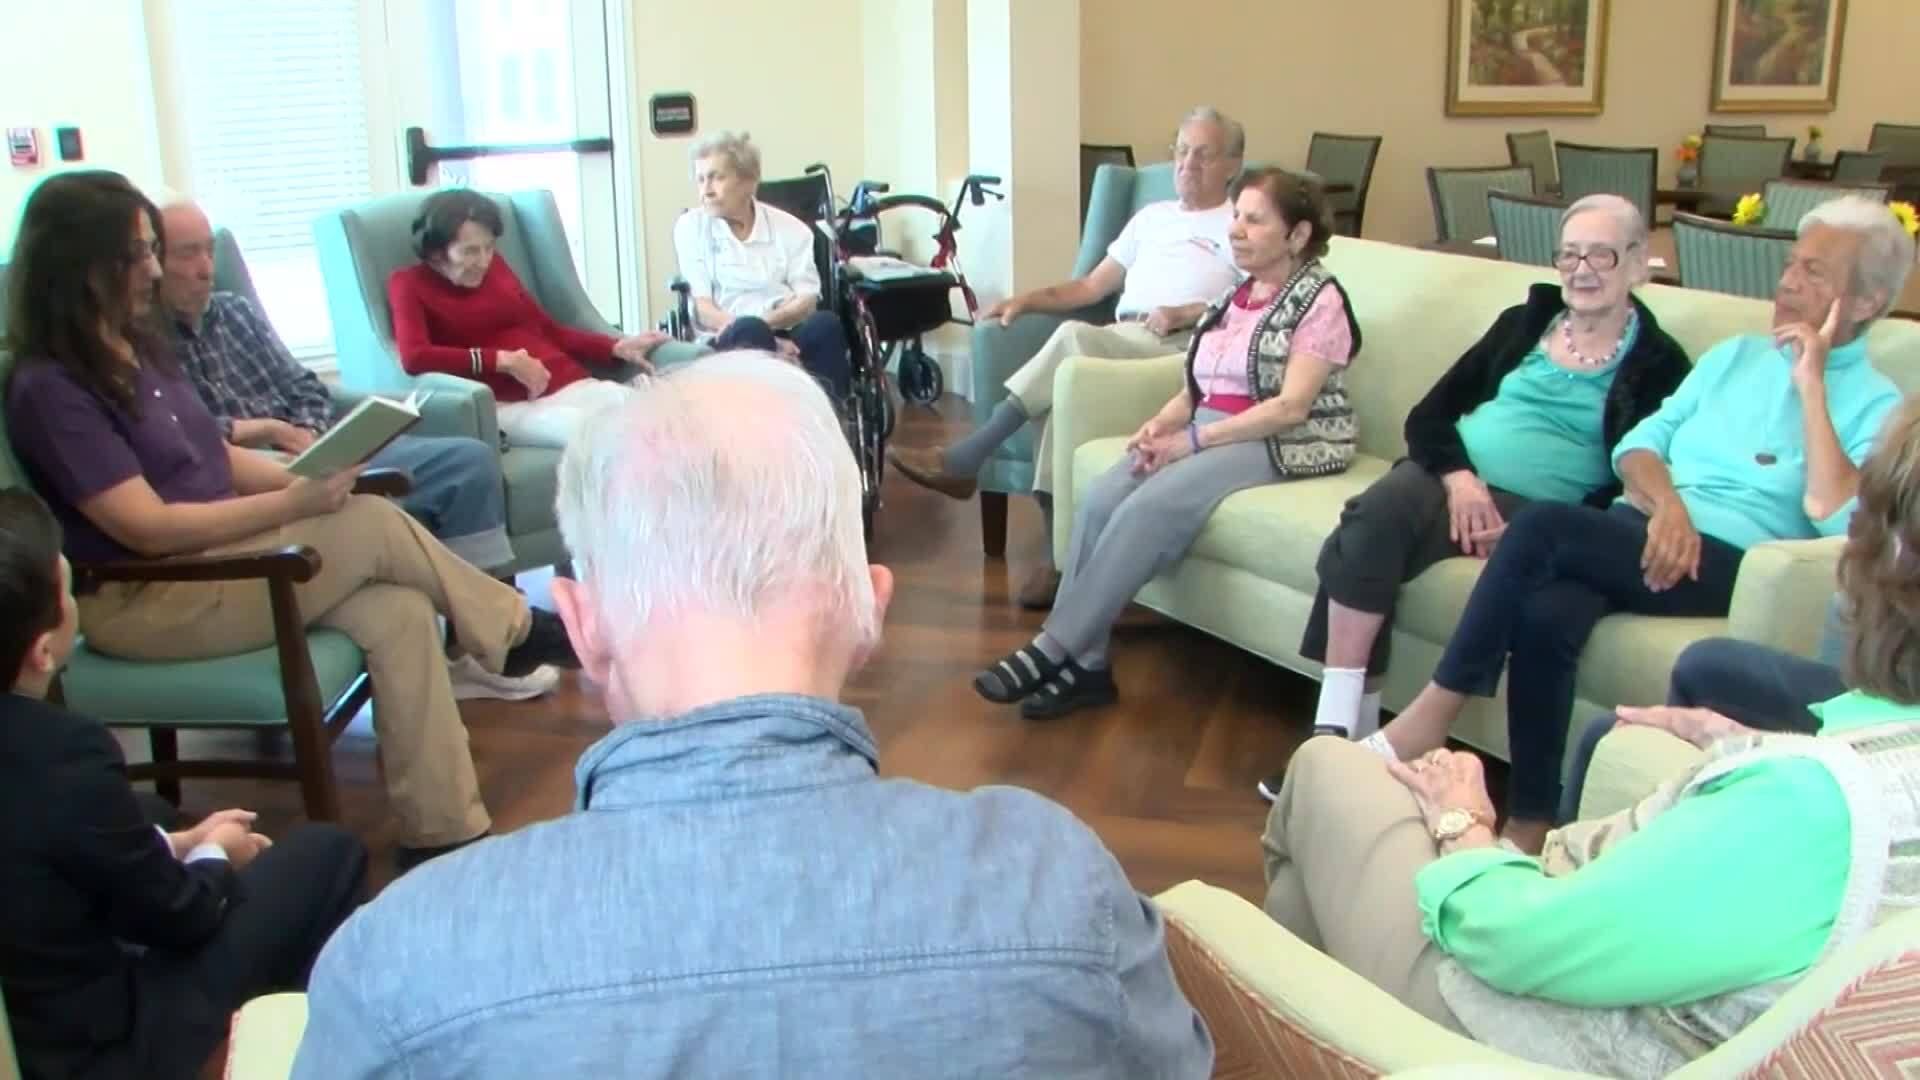 Dementia patients get help through stories